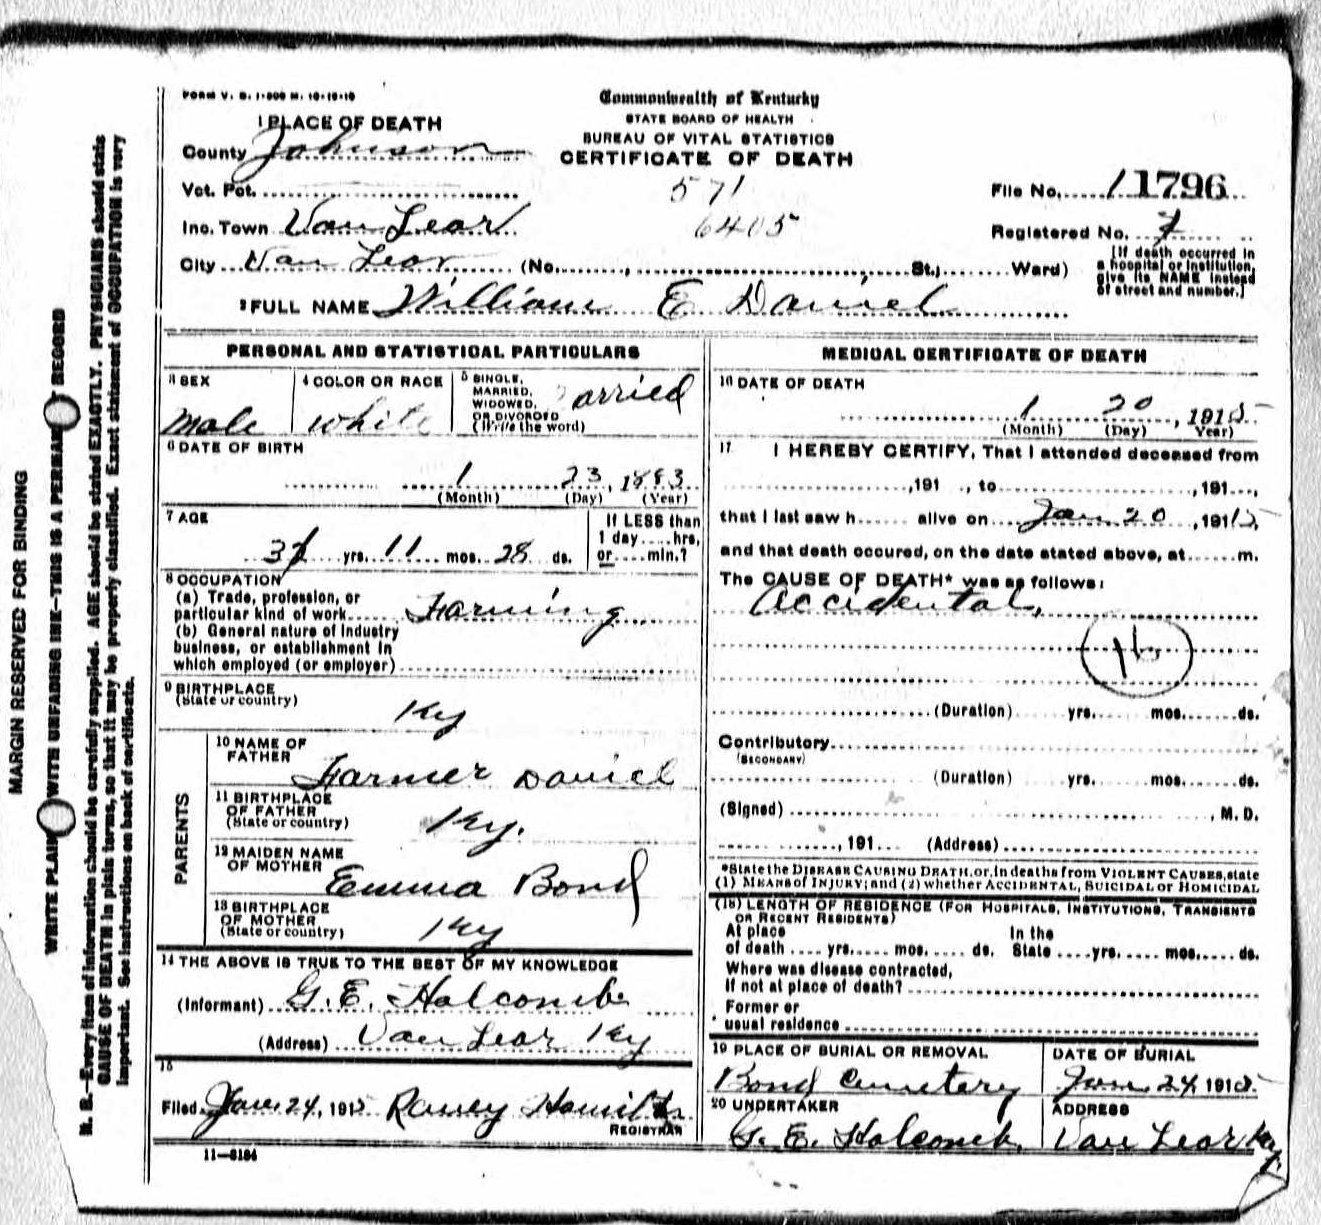 William e daniel and sarah cathern wright 19 death certificate for william 1betcityfo Images